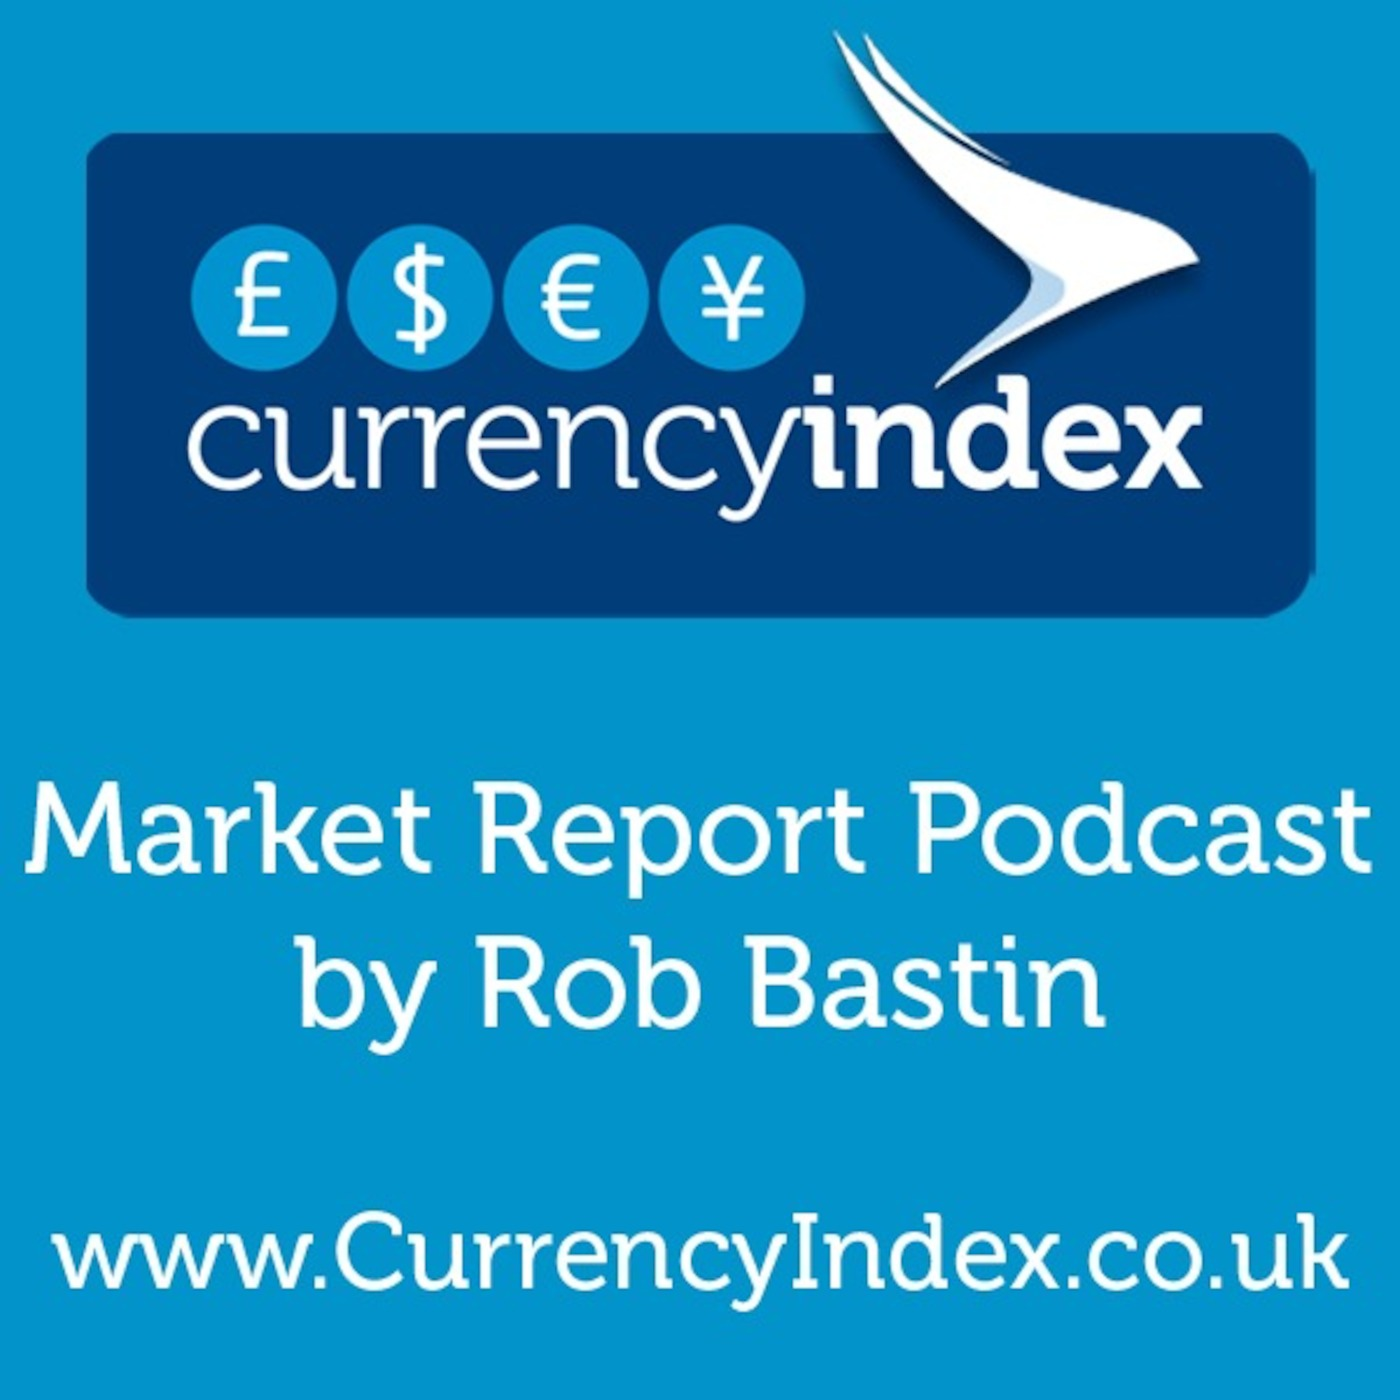 Currency Index #006 - Quiet Day Before a Potential Bumpy Ride